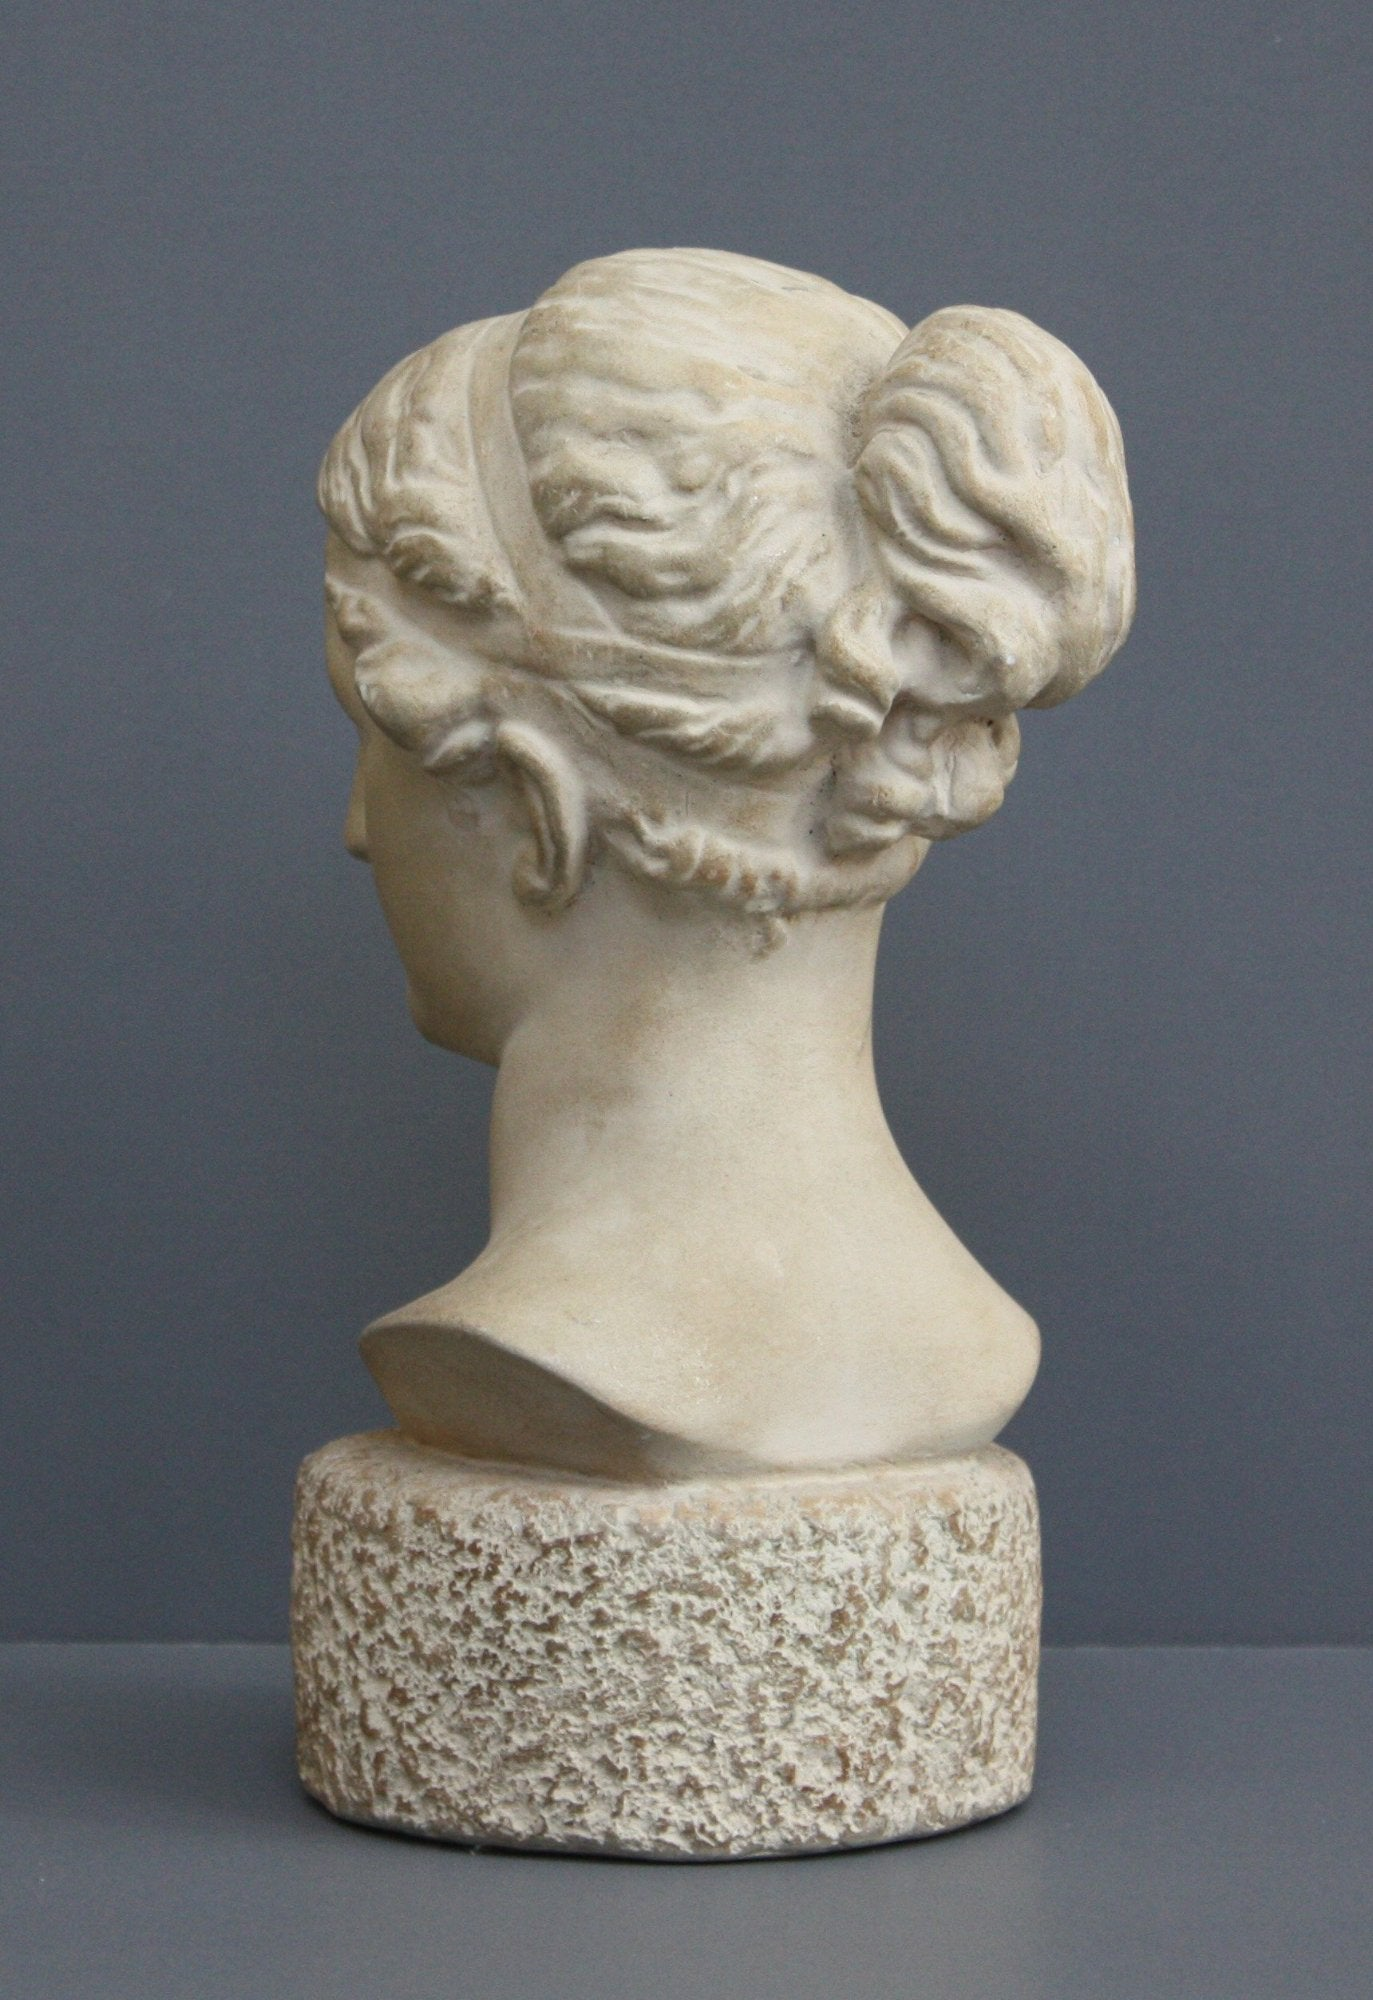 Photo of Plaster Cast of Hebe Reduction on a gray background